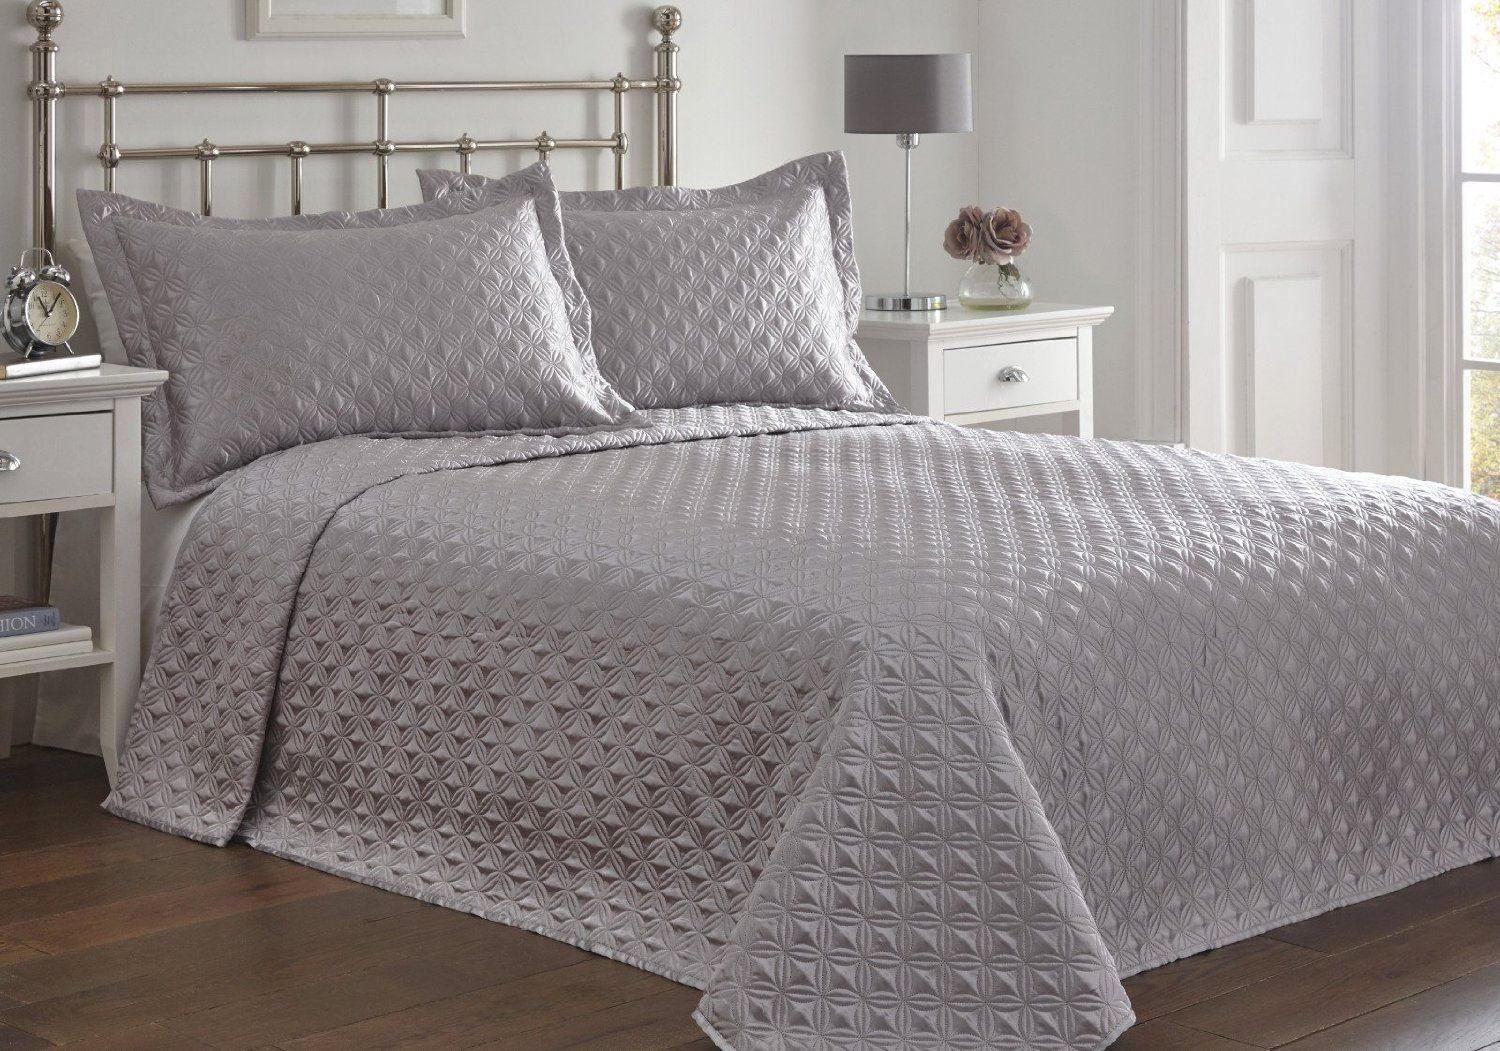 King Size Bed Regent Silver Bedspread Set Throw Over